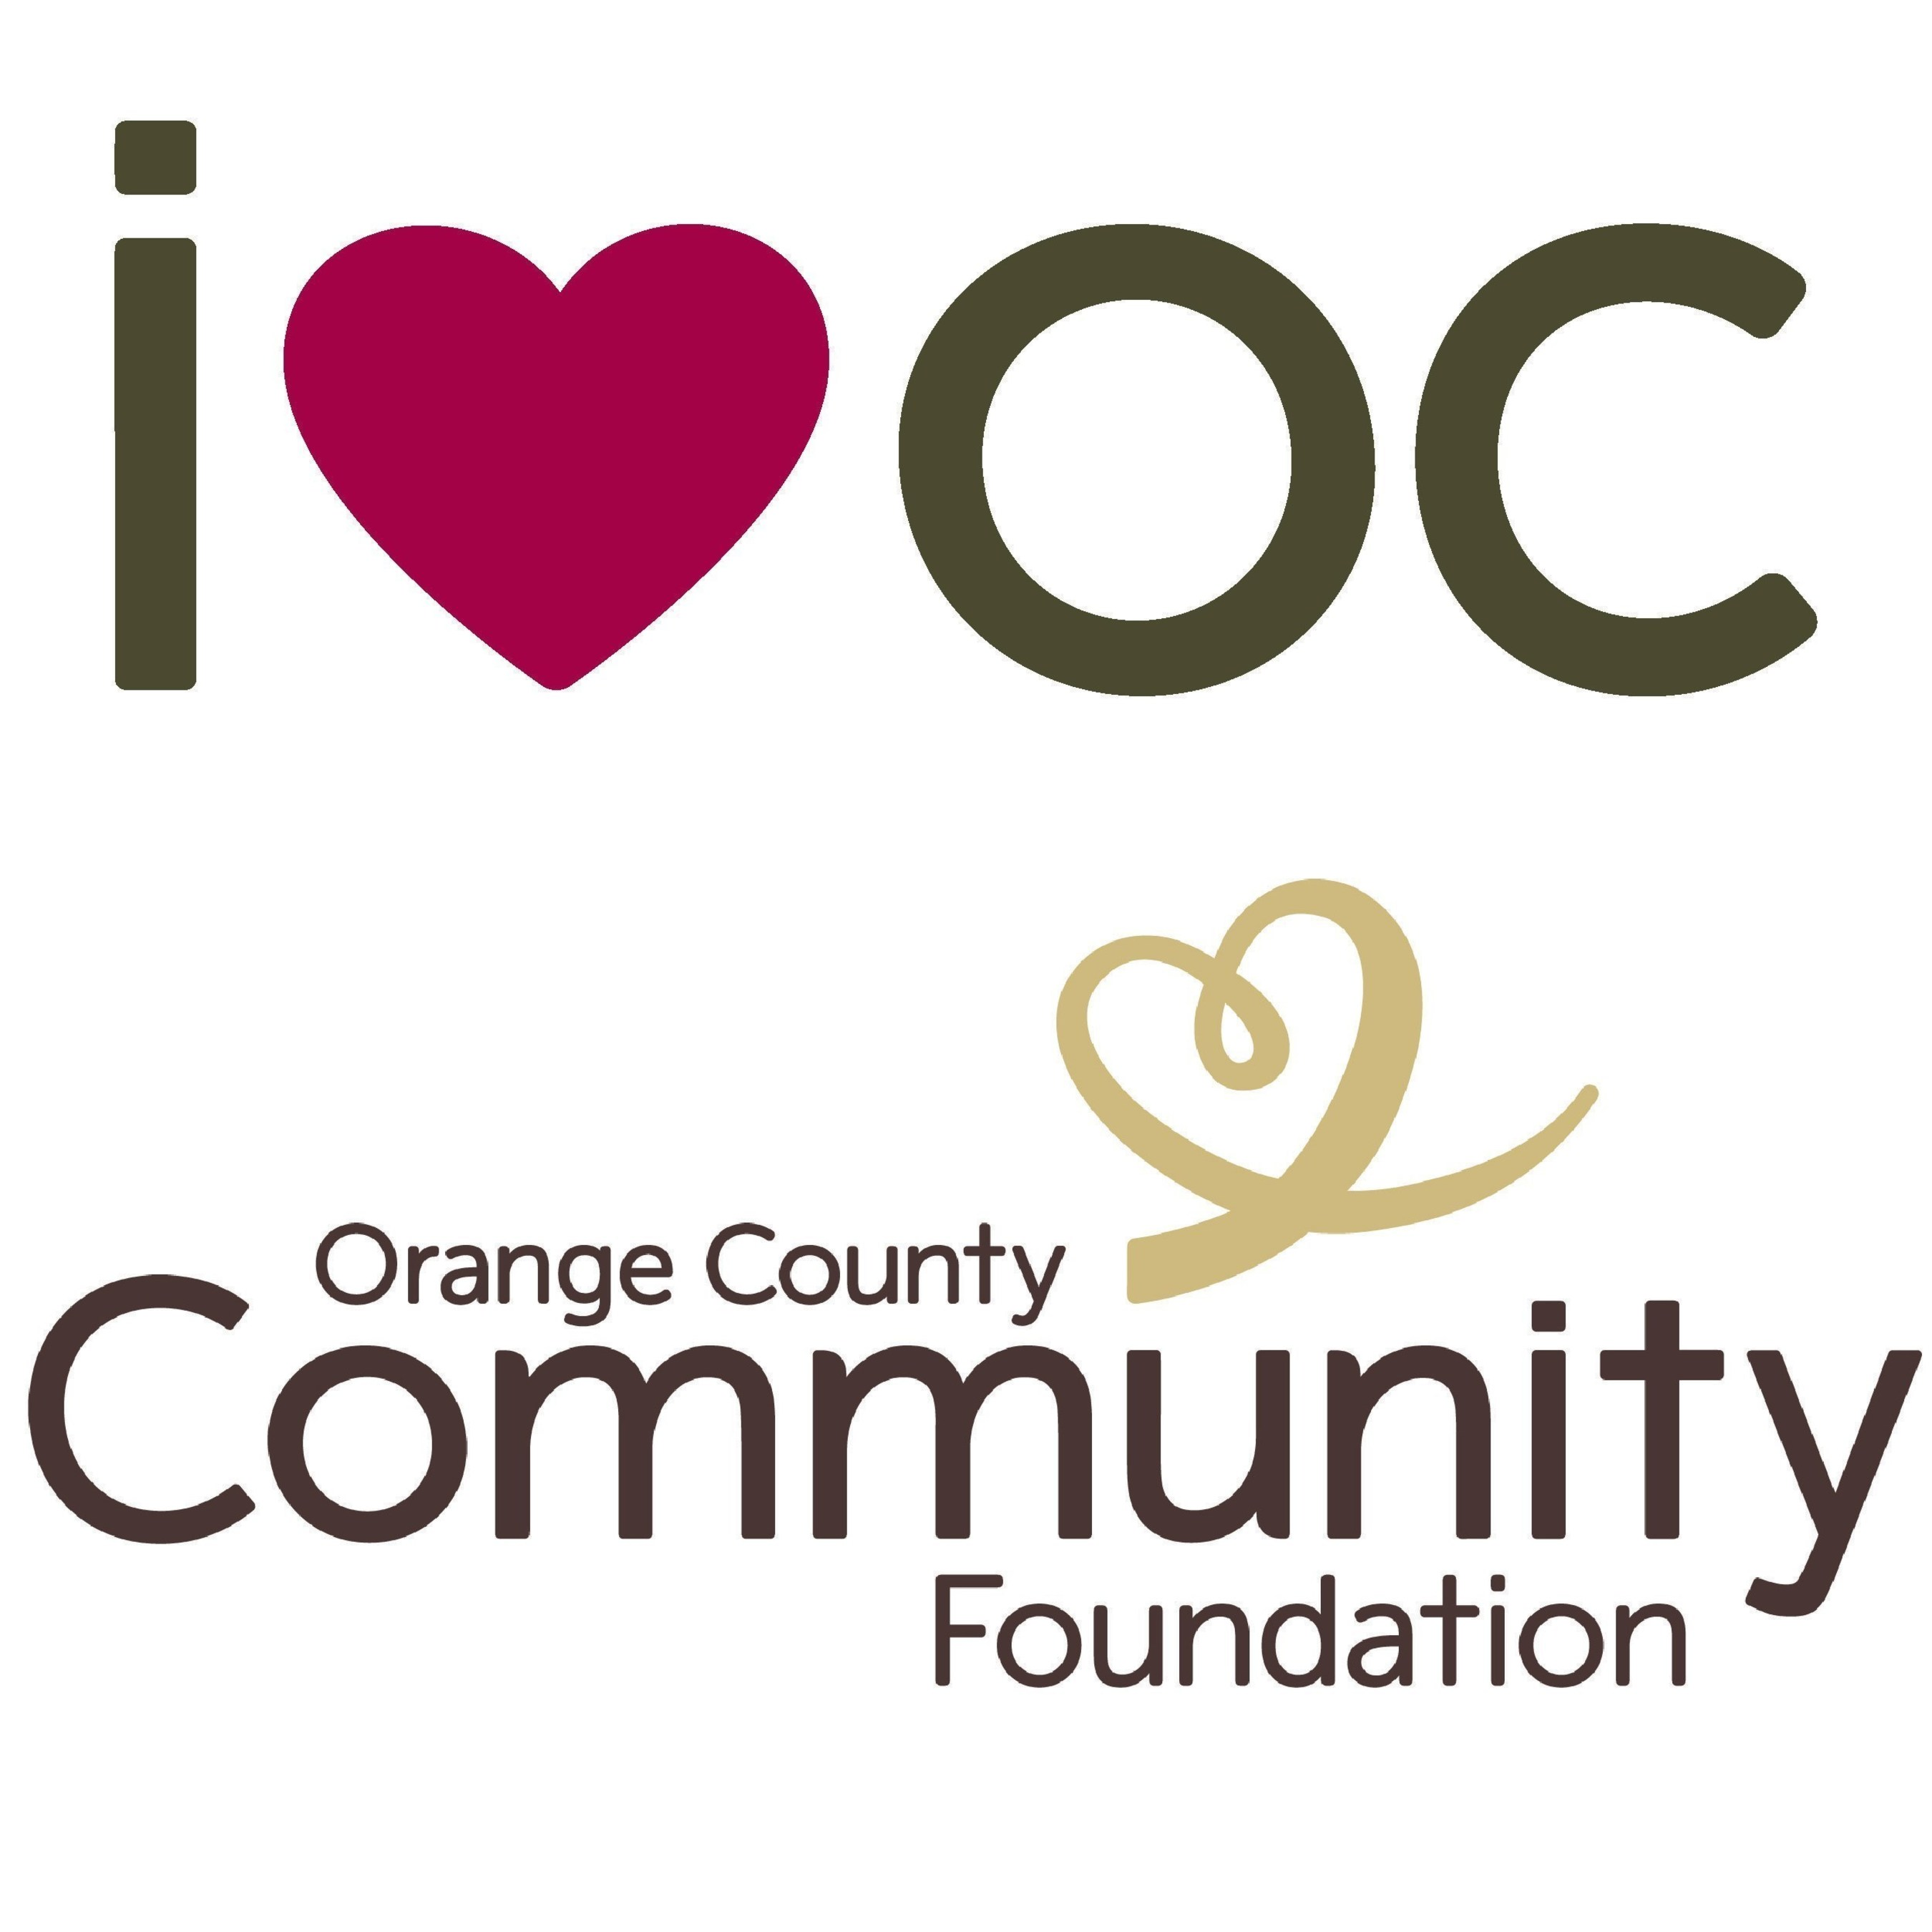 The Orange County Community Foundation is supercharging giving with the 2016 iheartoc Giving Day April 27-28, 2016.